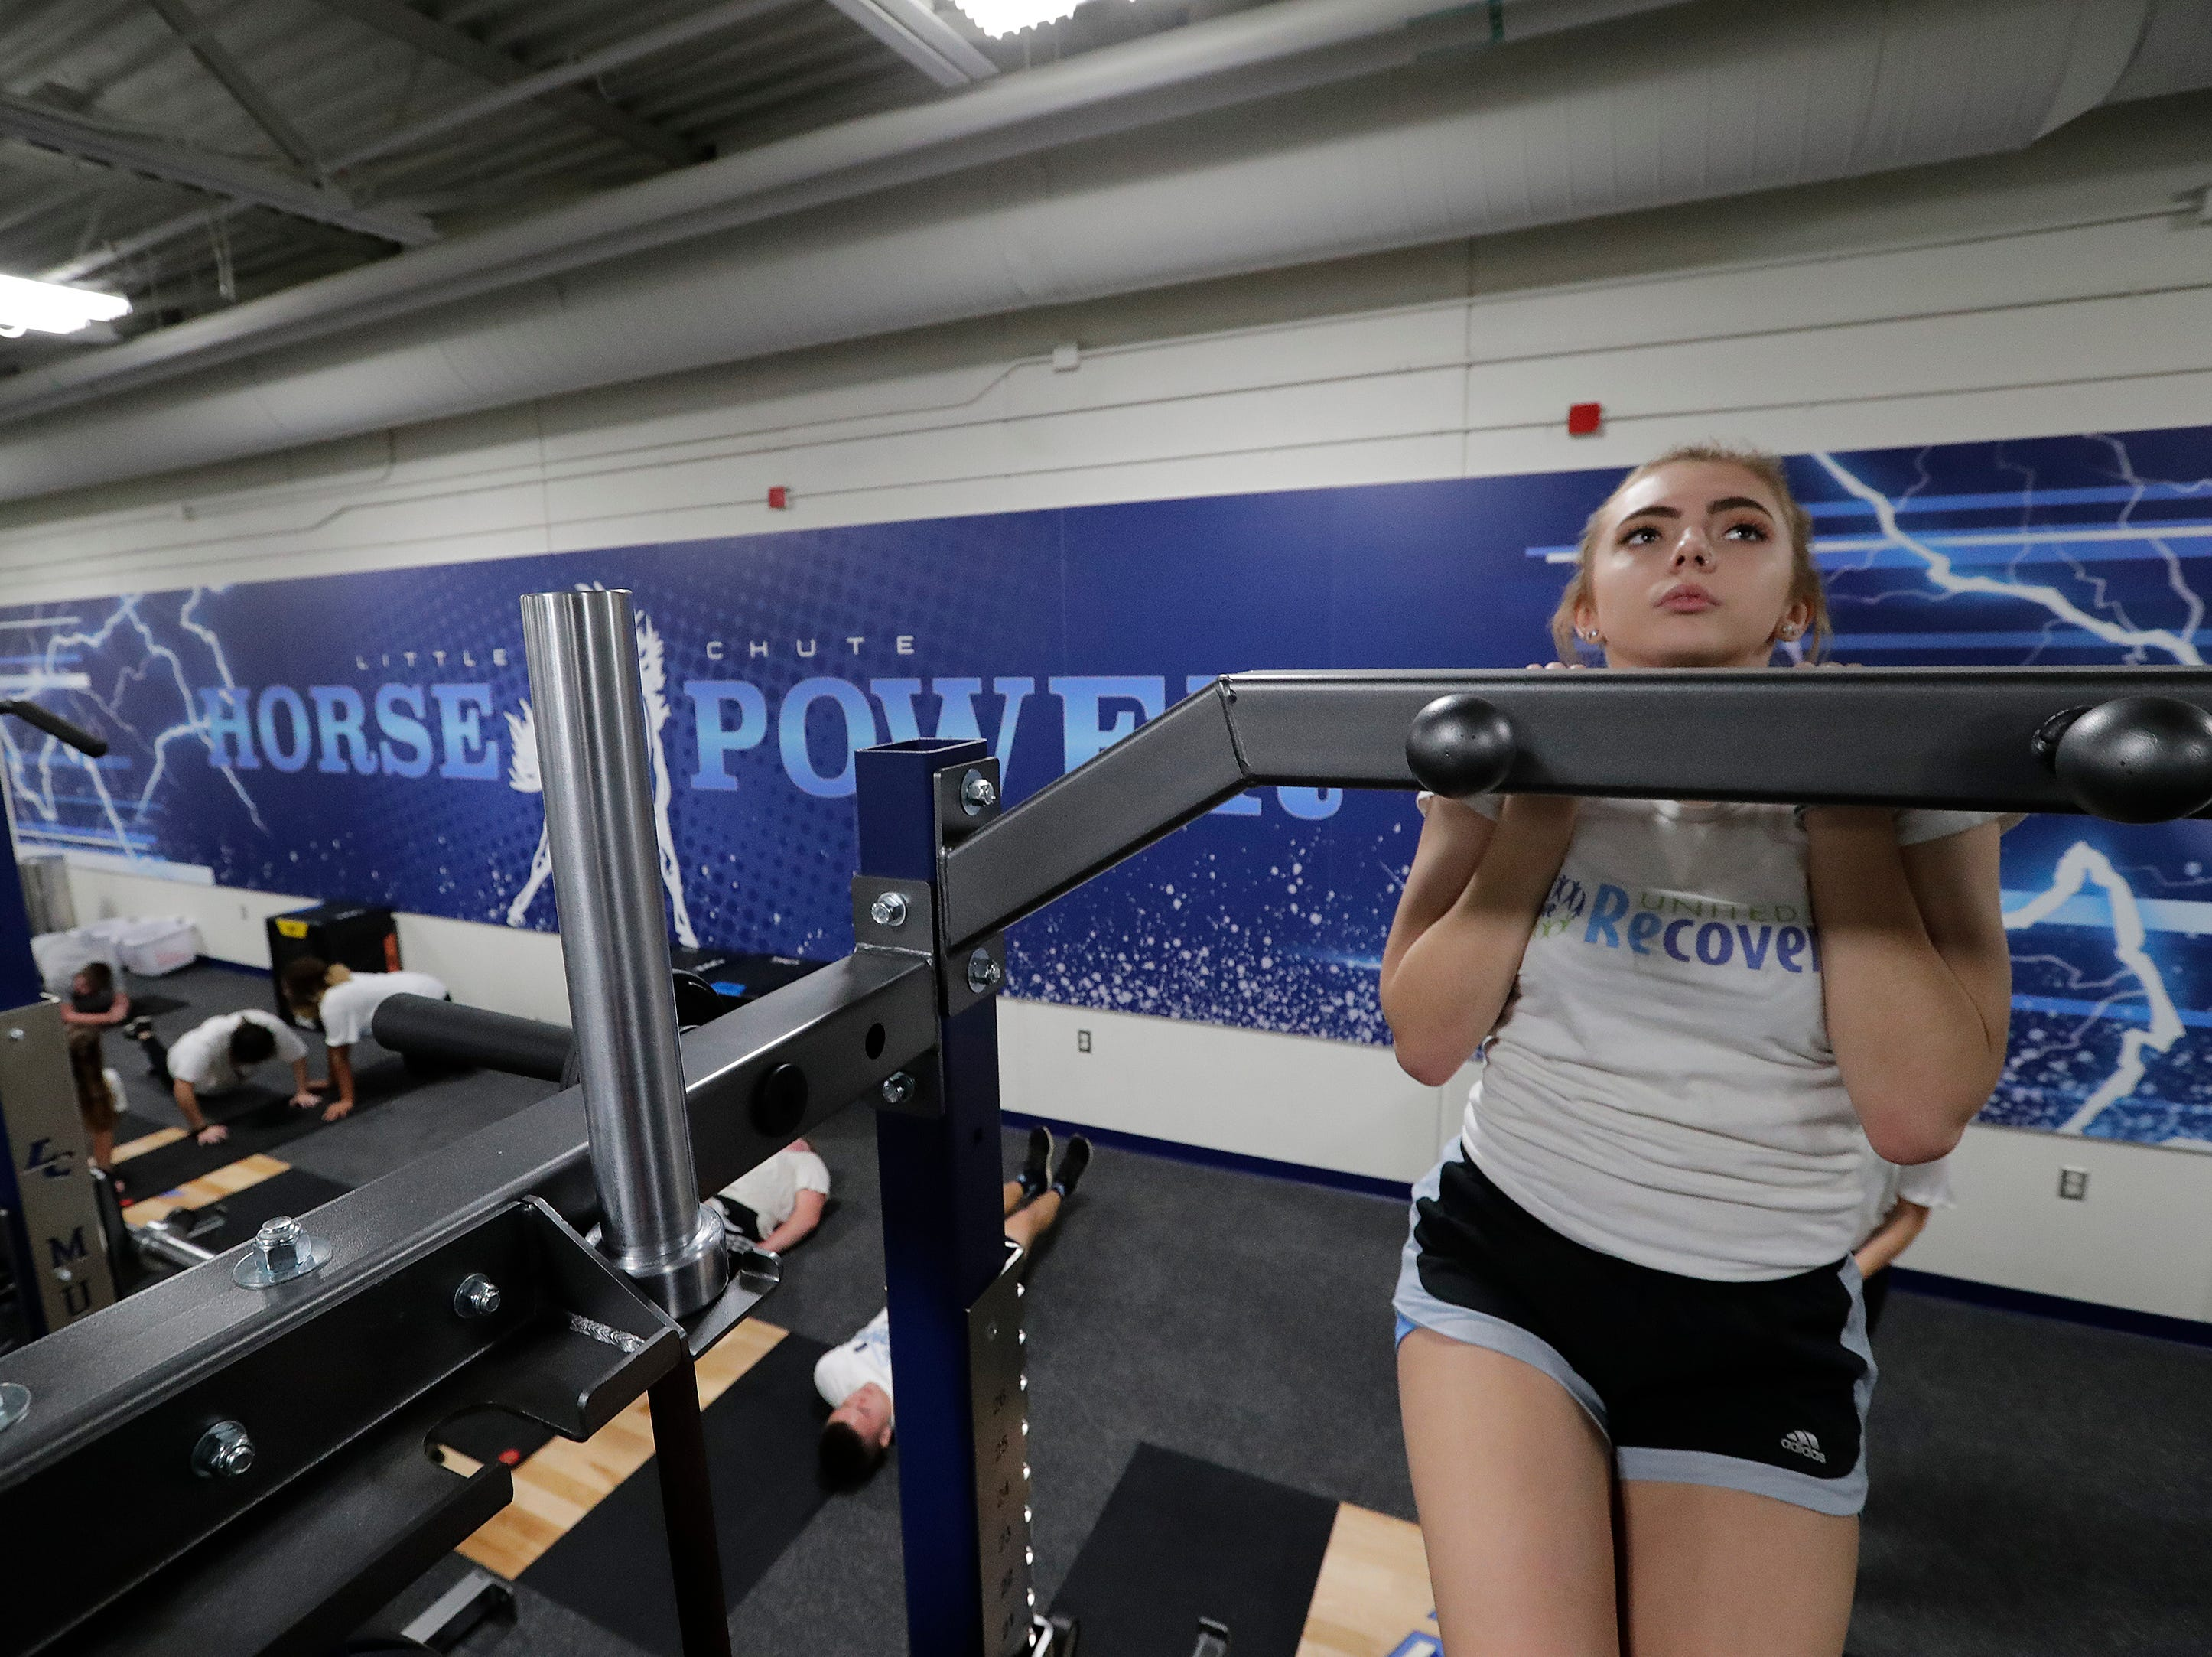 Madison Withrow does chin ups as she participates in the Intro to Strength and Conditioning class in the new fitness center at Little Chute High School Tuesday, November 6, 2018, in Little Chute, Wis. 